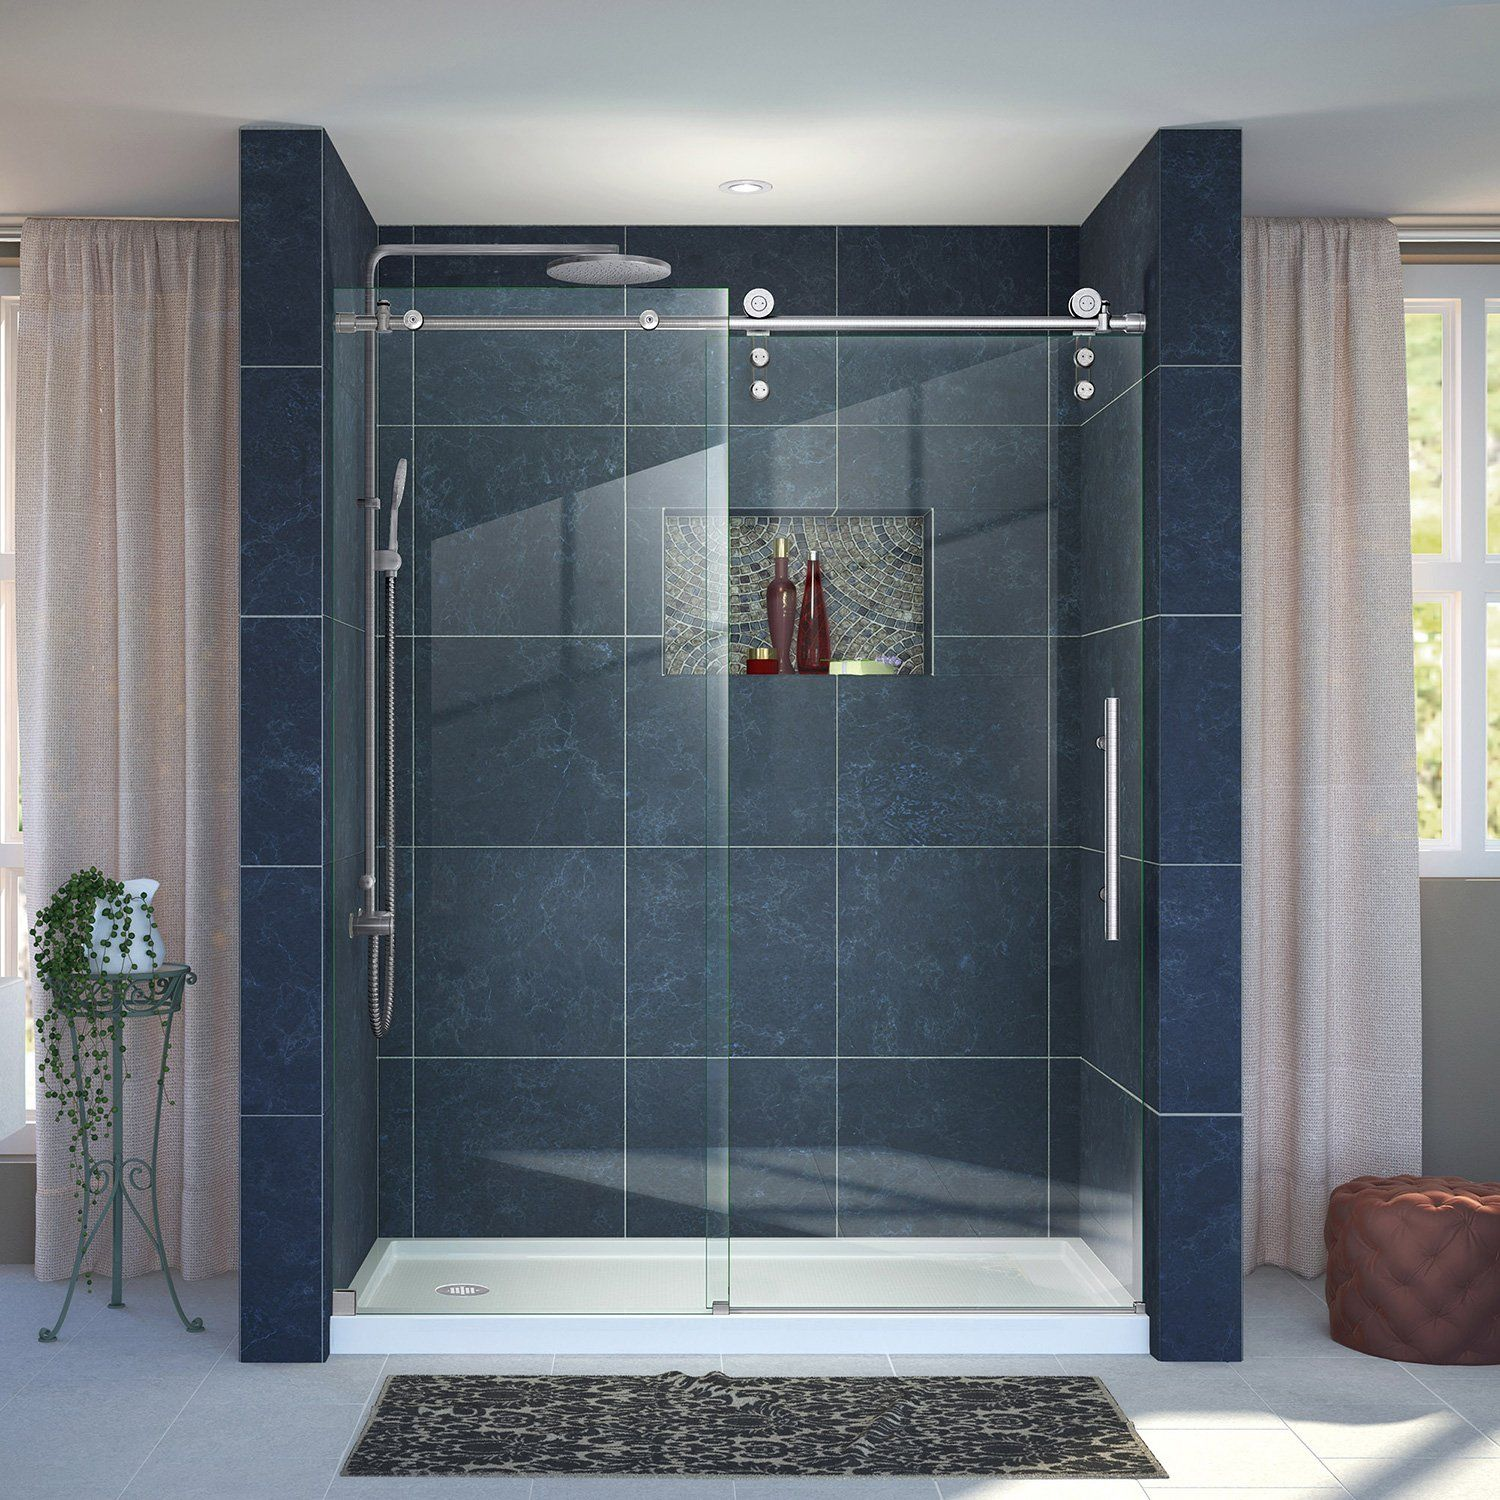 DreamLine EnigmaZ Fully Sliding Shower Door and SlimLine